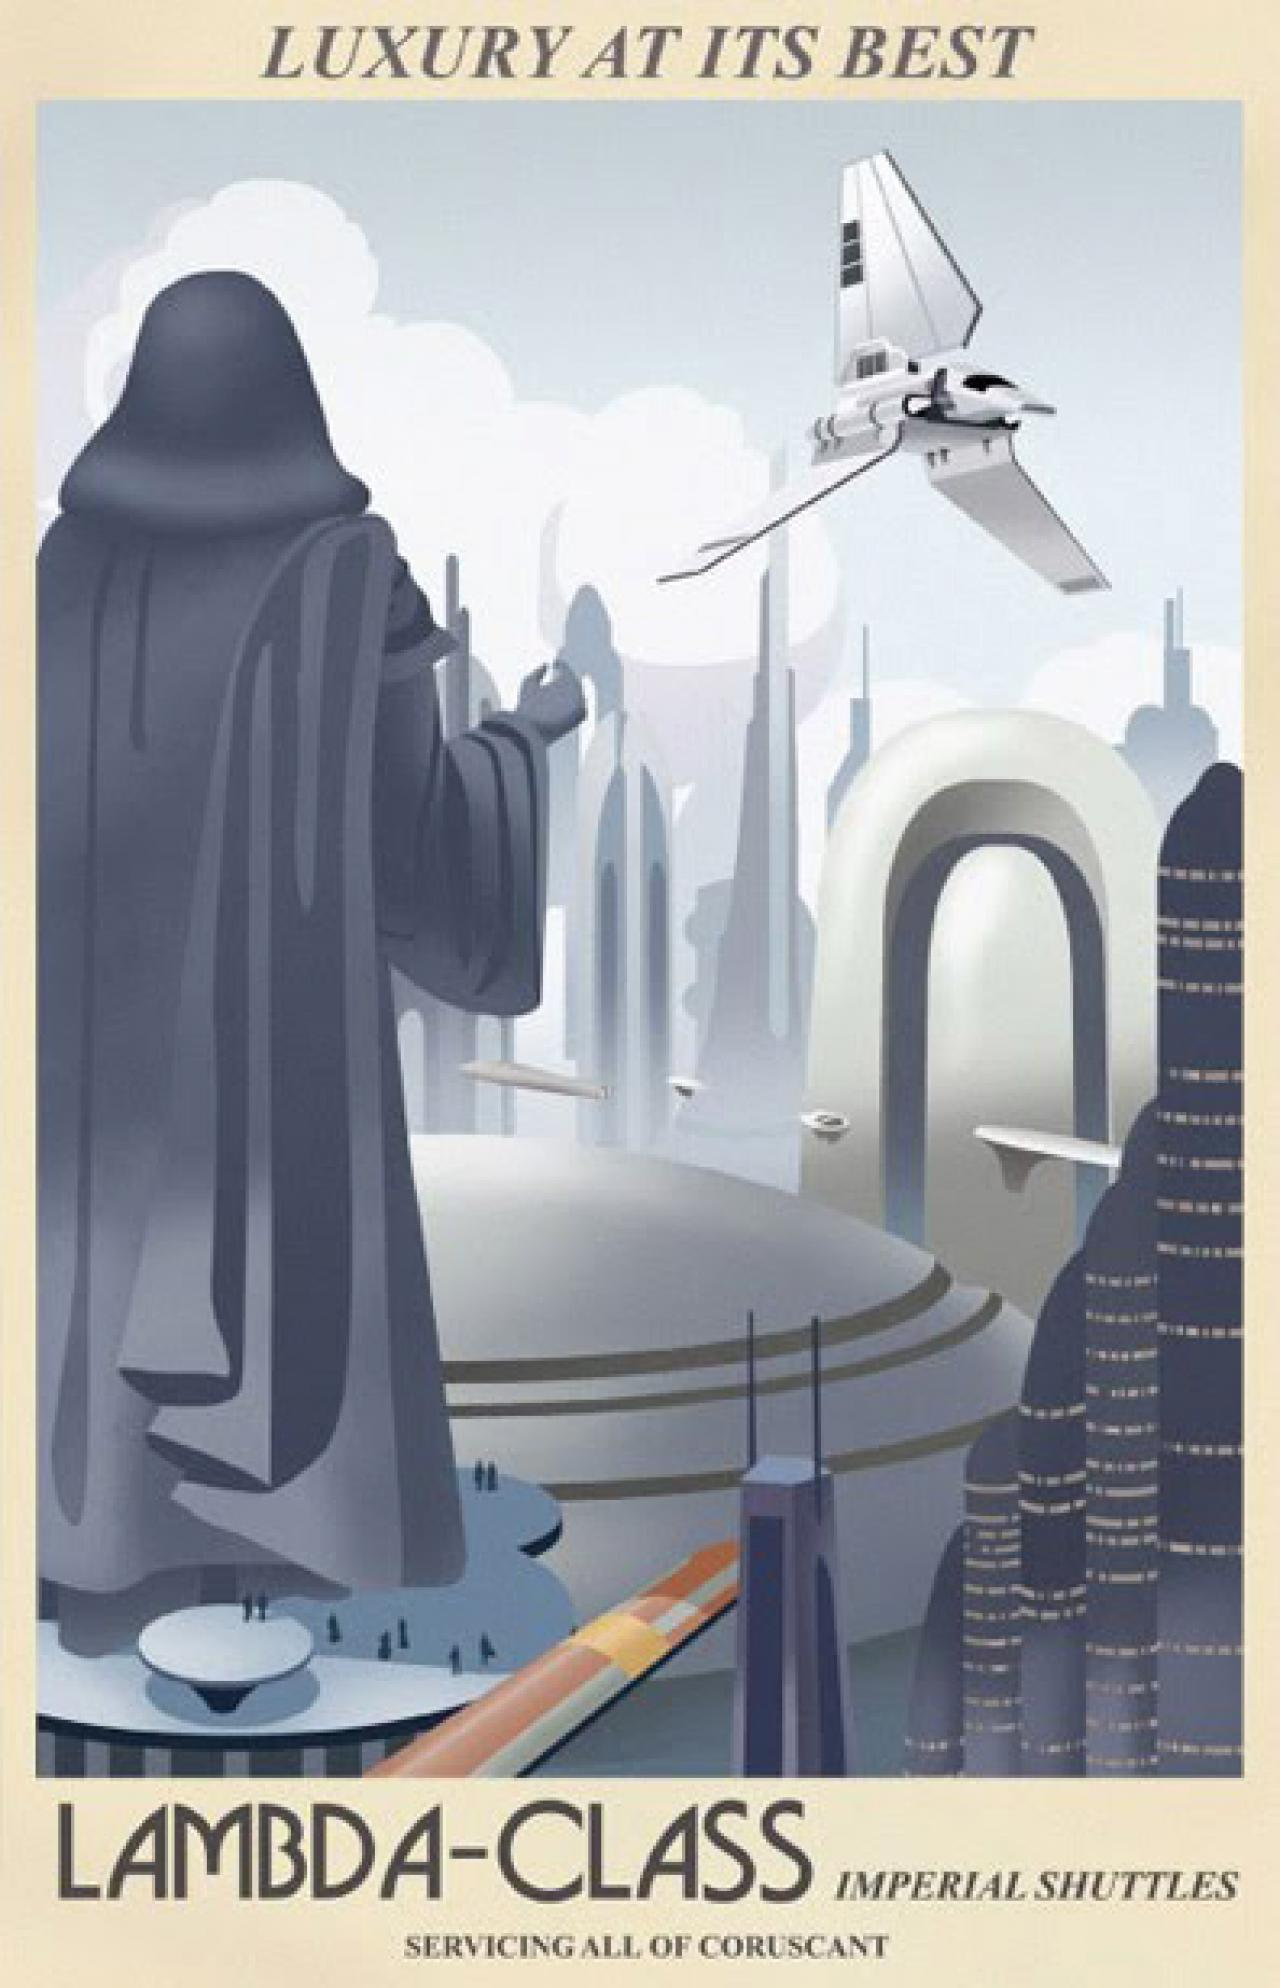 star-wars-travel-posters-steve-thomas-4